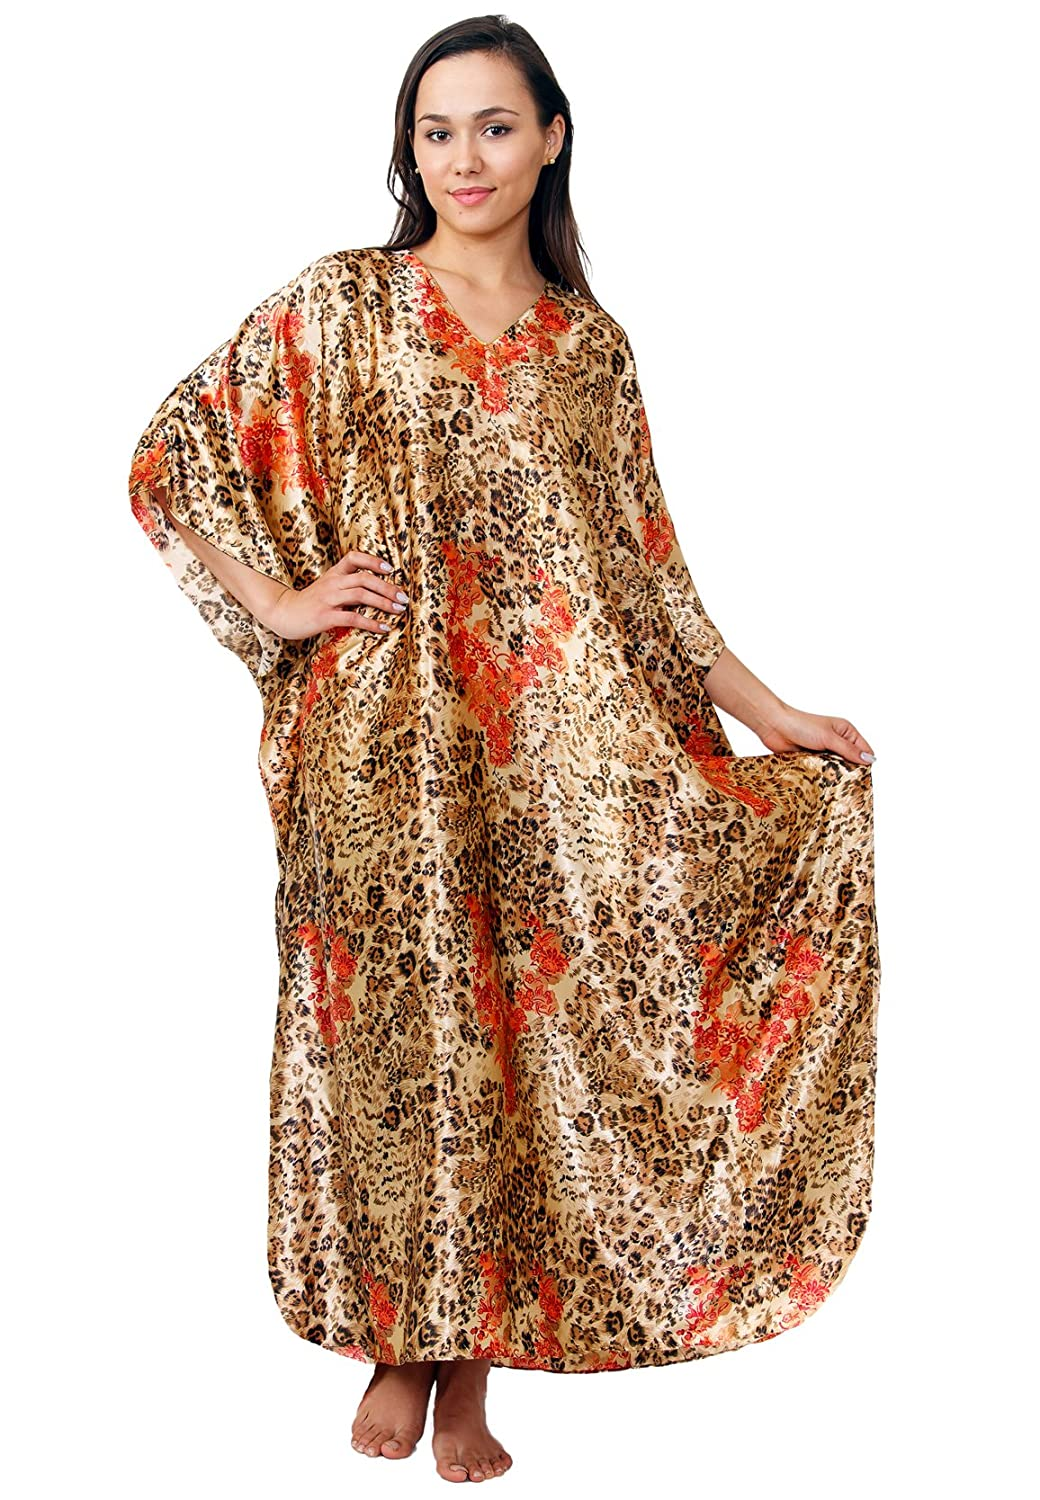 Up2date Fashion Satin Caftan, Exellent Cheetah Print, Plus Size, Style#Caf-45